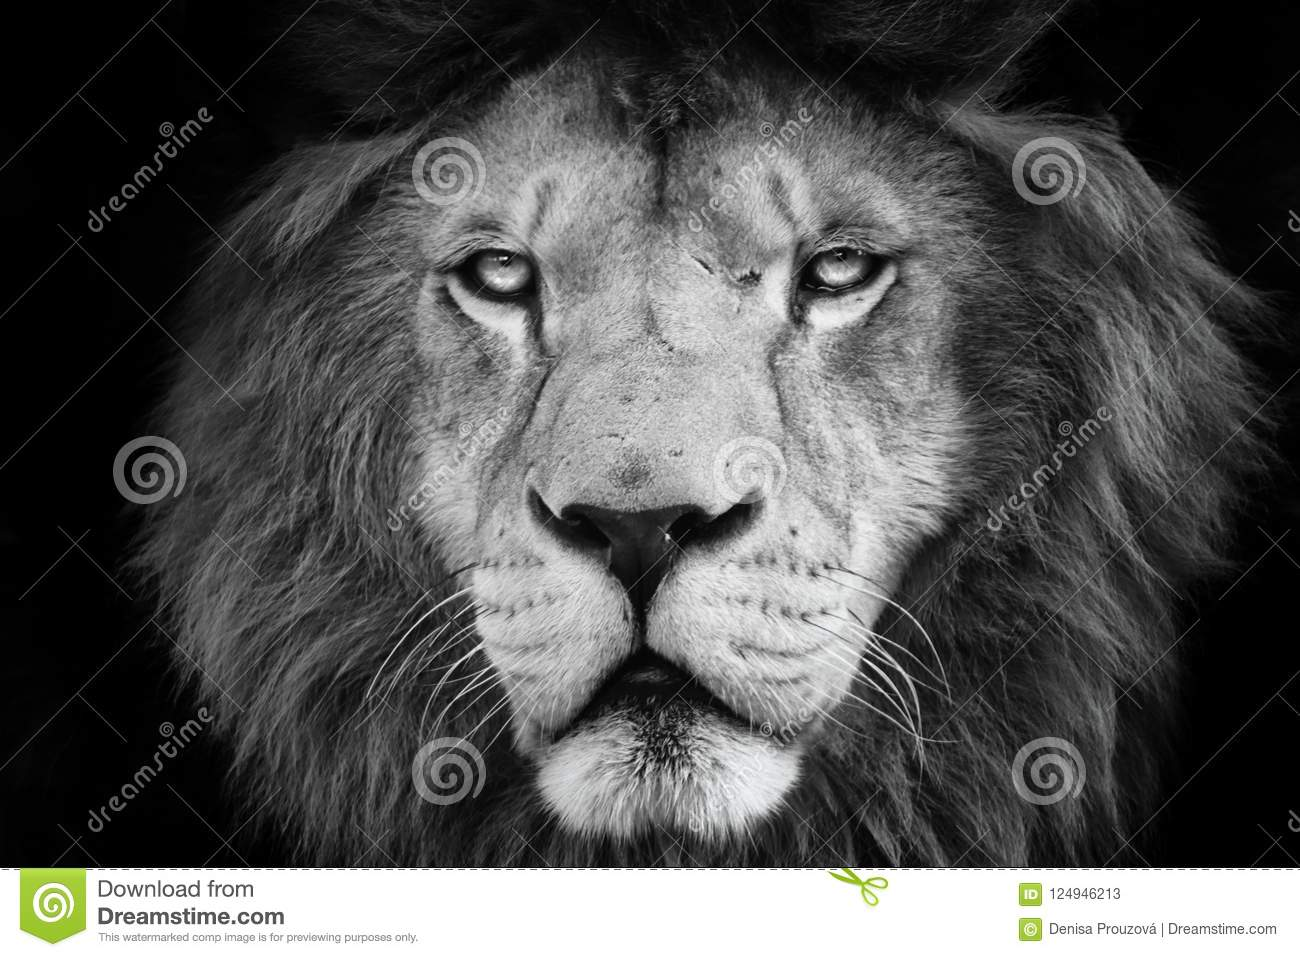 Portrait lion with black and white colour face lion lion look at the camera photographs from the animal world black and white poster high quality